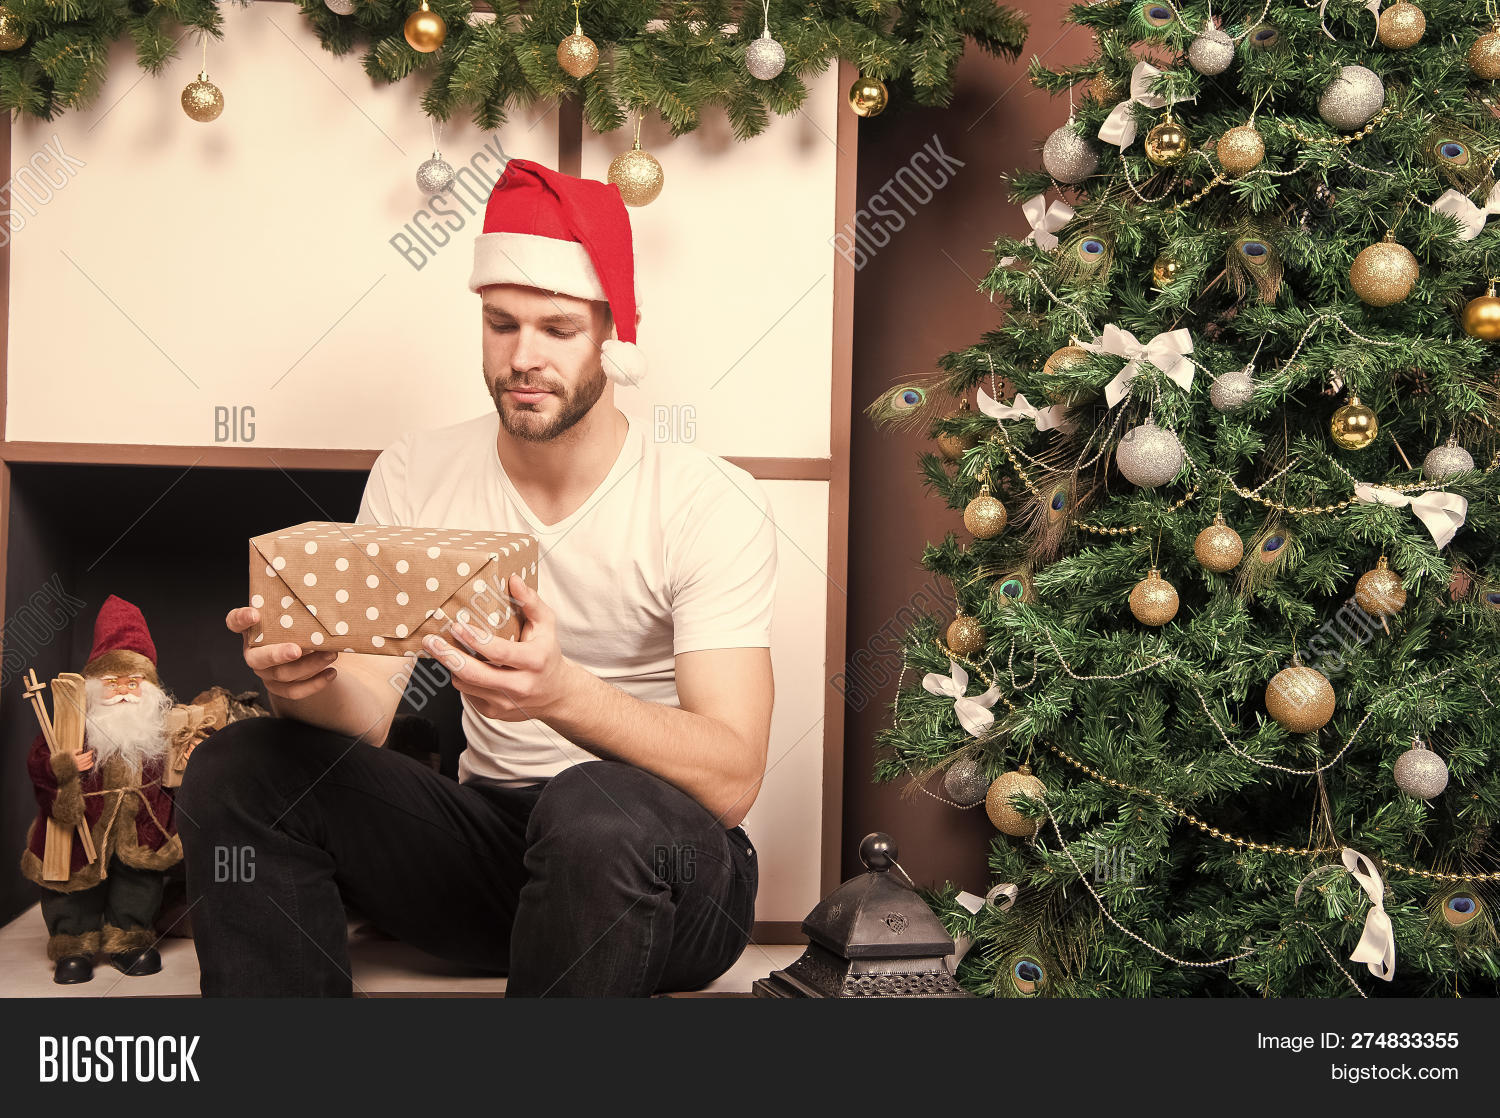 265b31ec86973 Macho in red hat with wrapped boxes at fireplace. Man santa with presents  at xmas tree. Christmas